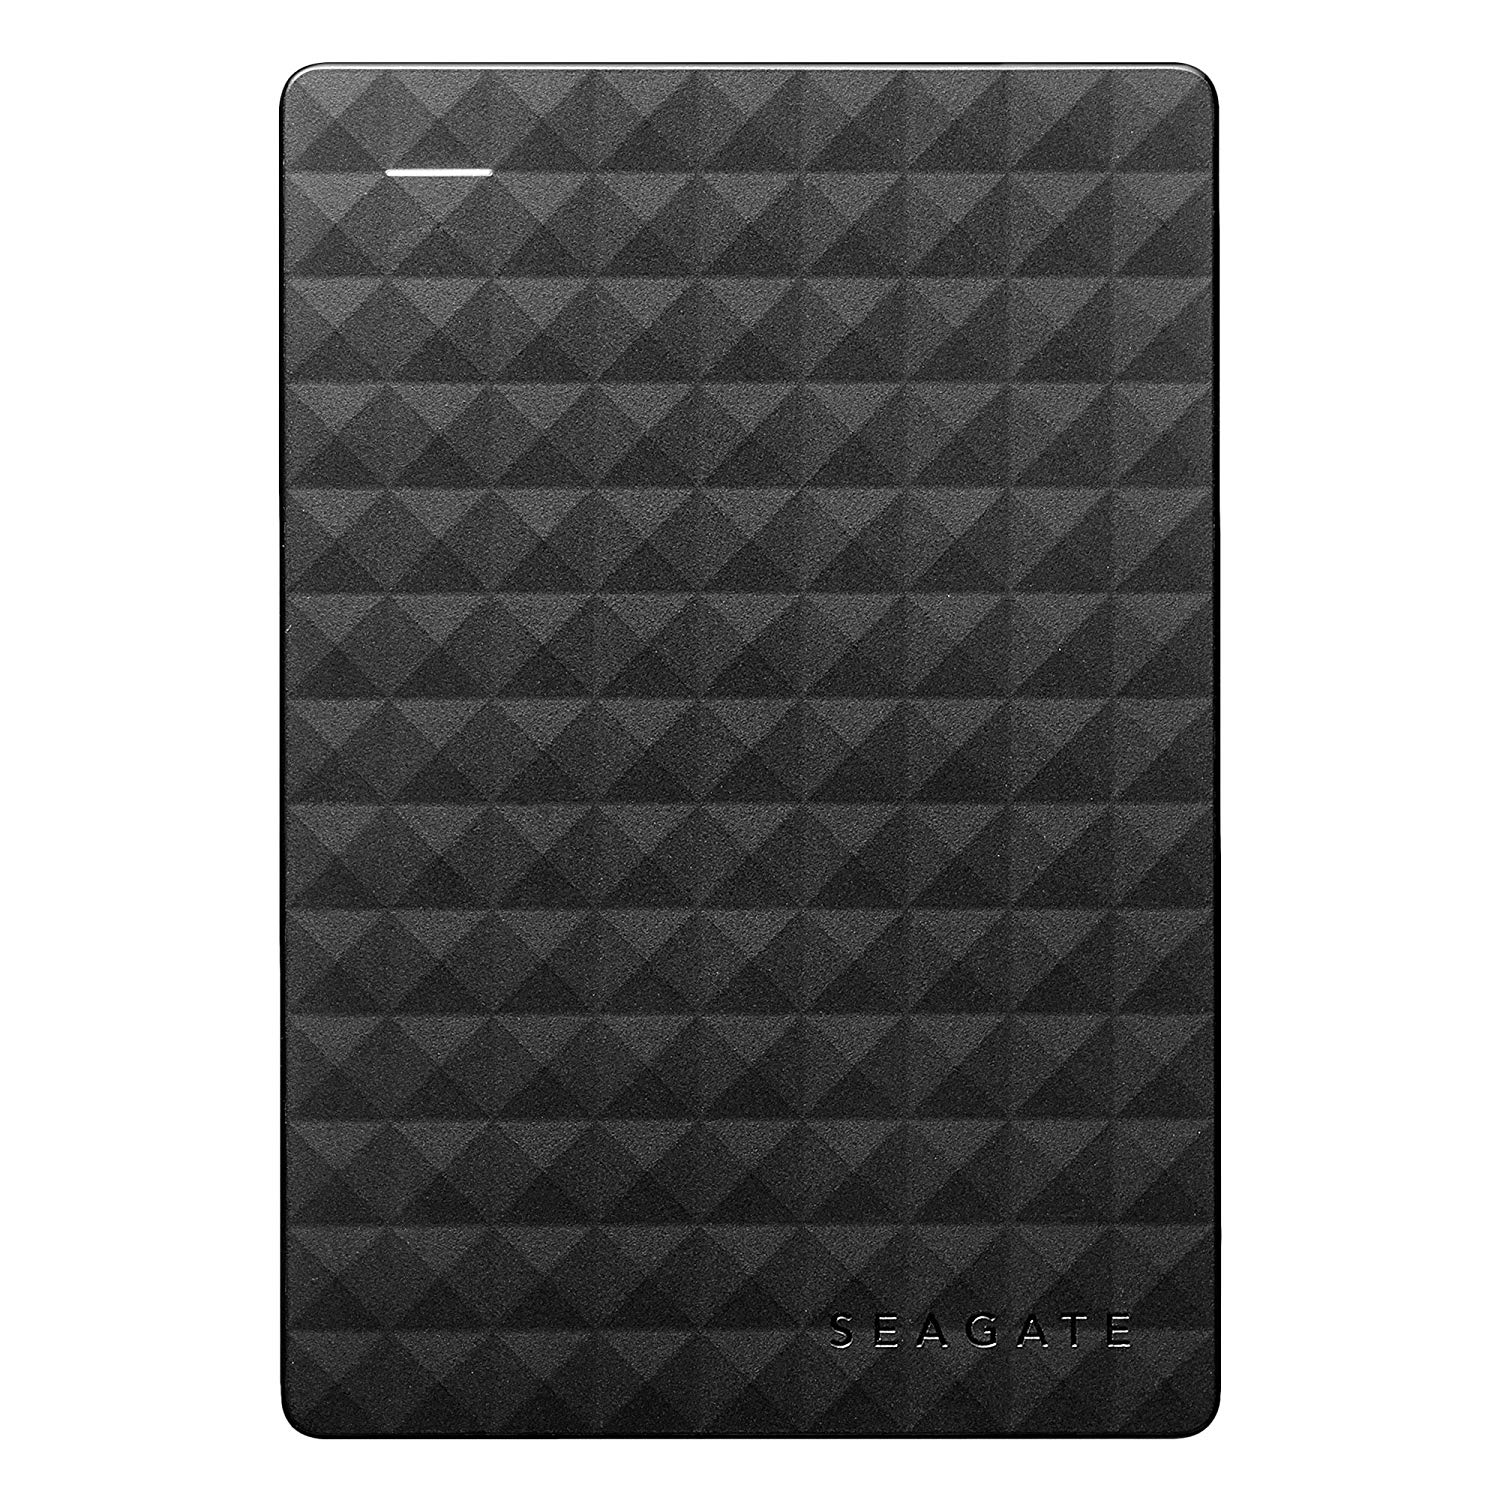 HD PORTATIL  500GB  SEAGATE SRD0NF1(STEA500400)